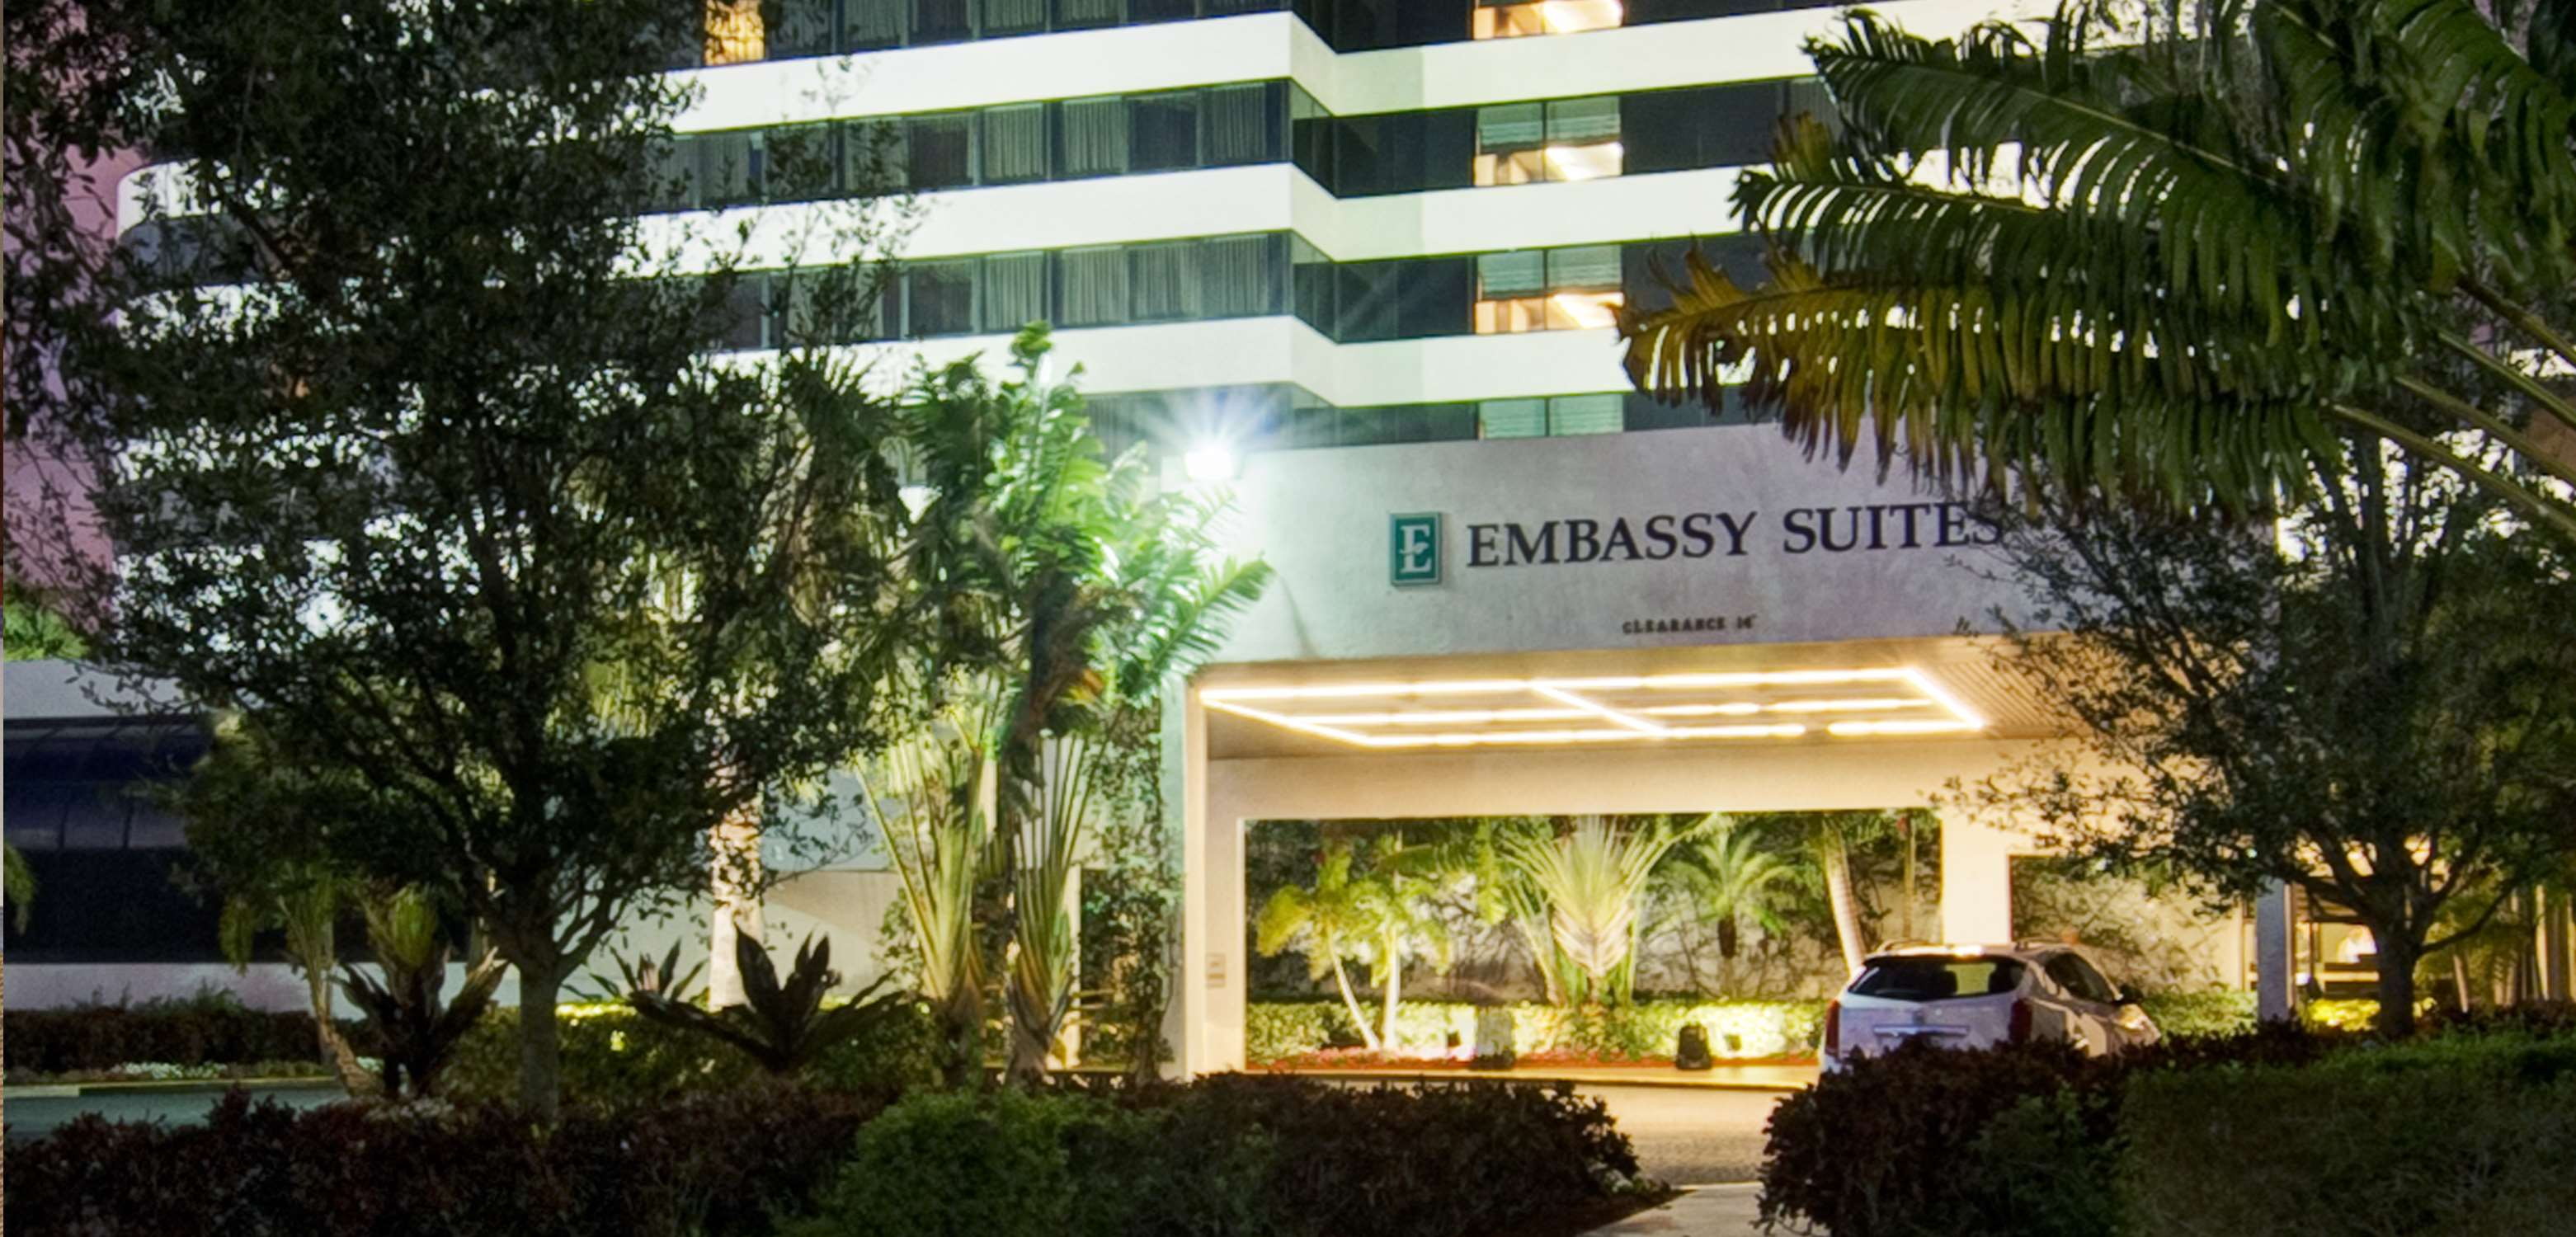 Embassy Suites by Hilton West Palm Beach Central image 3